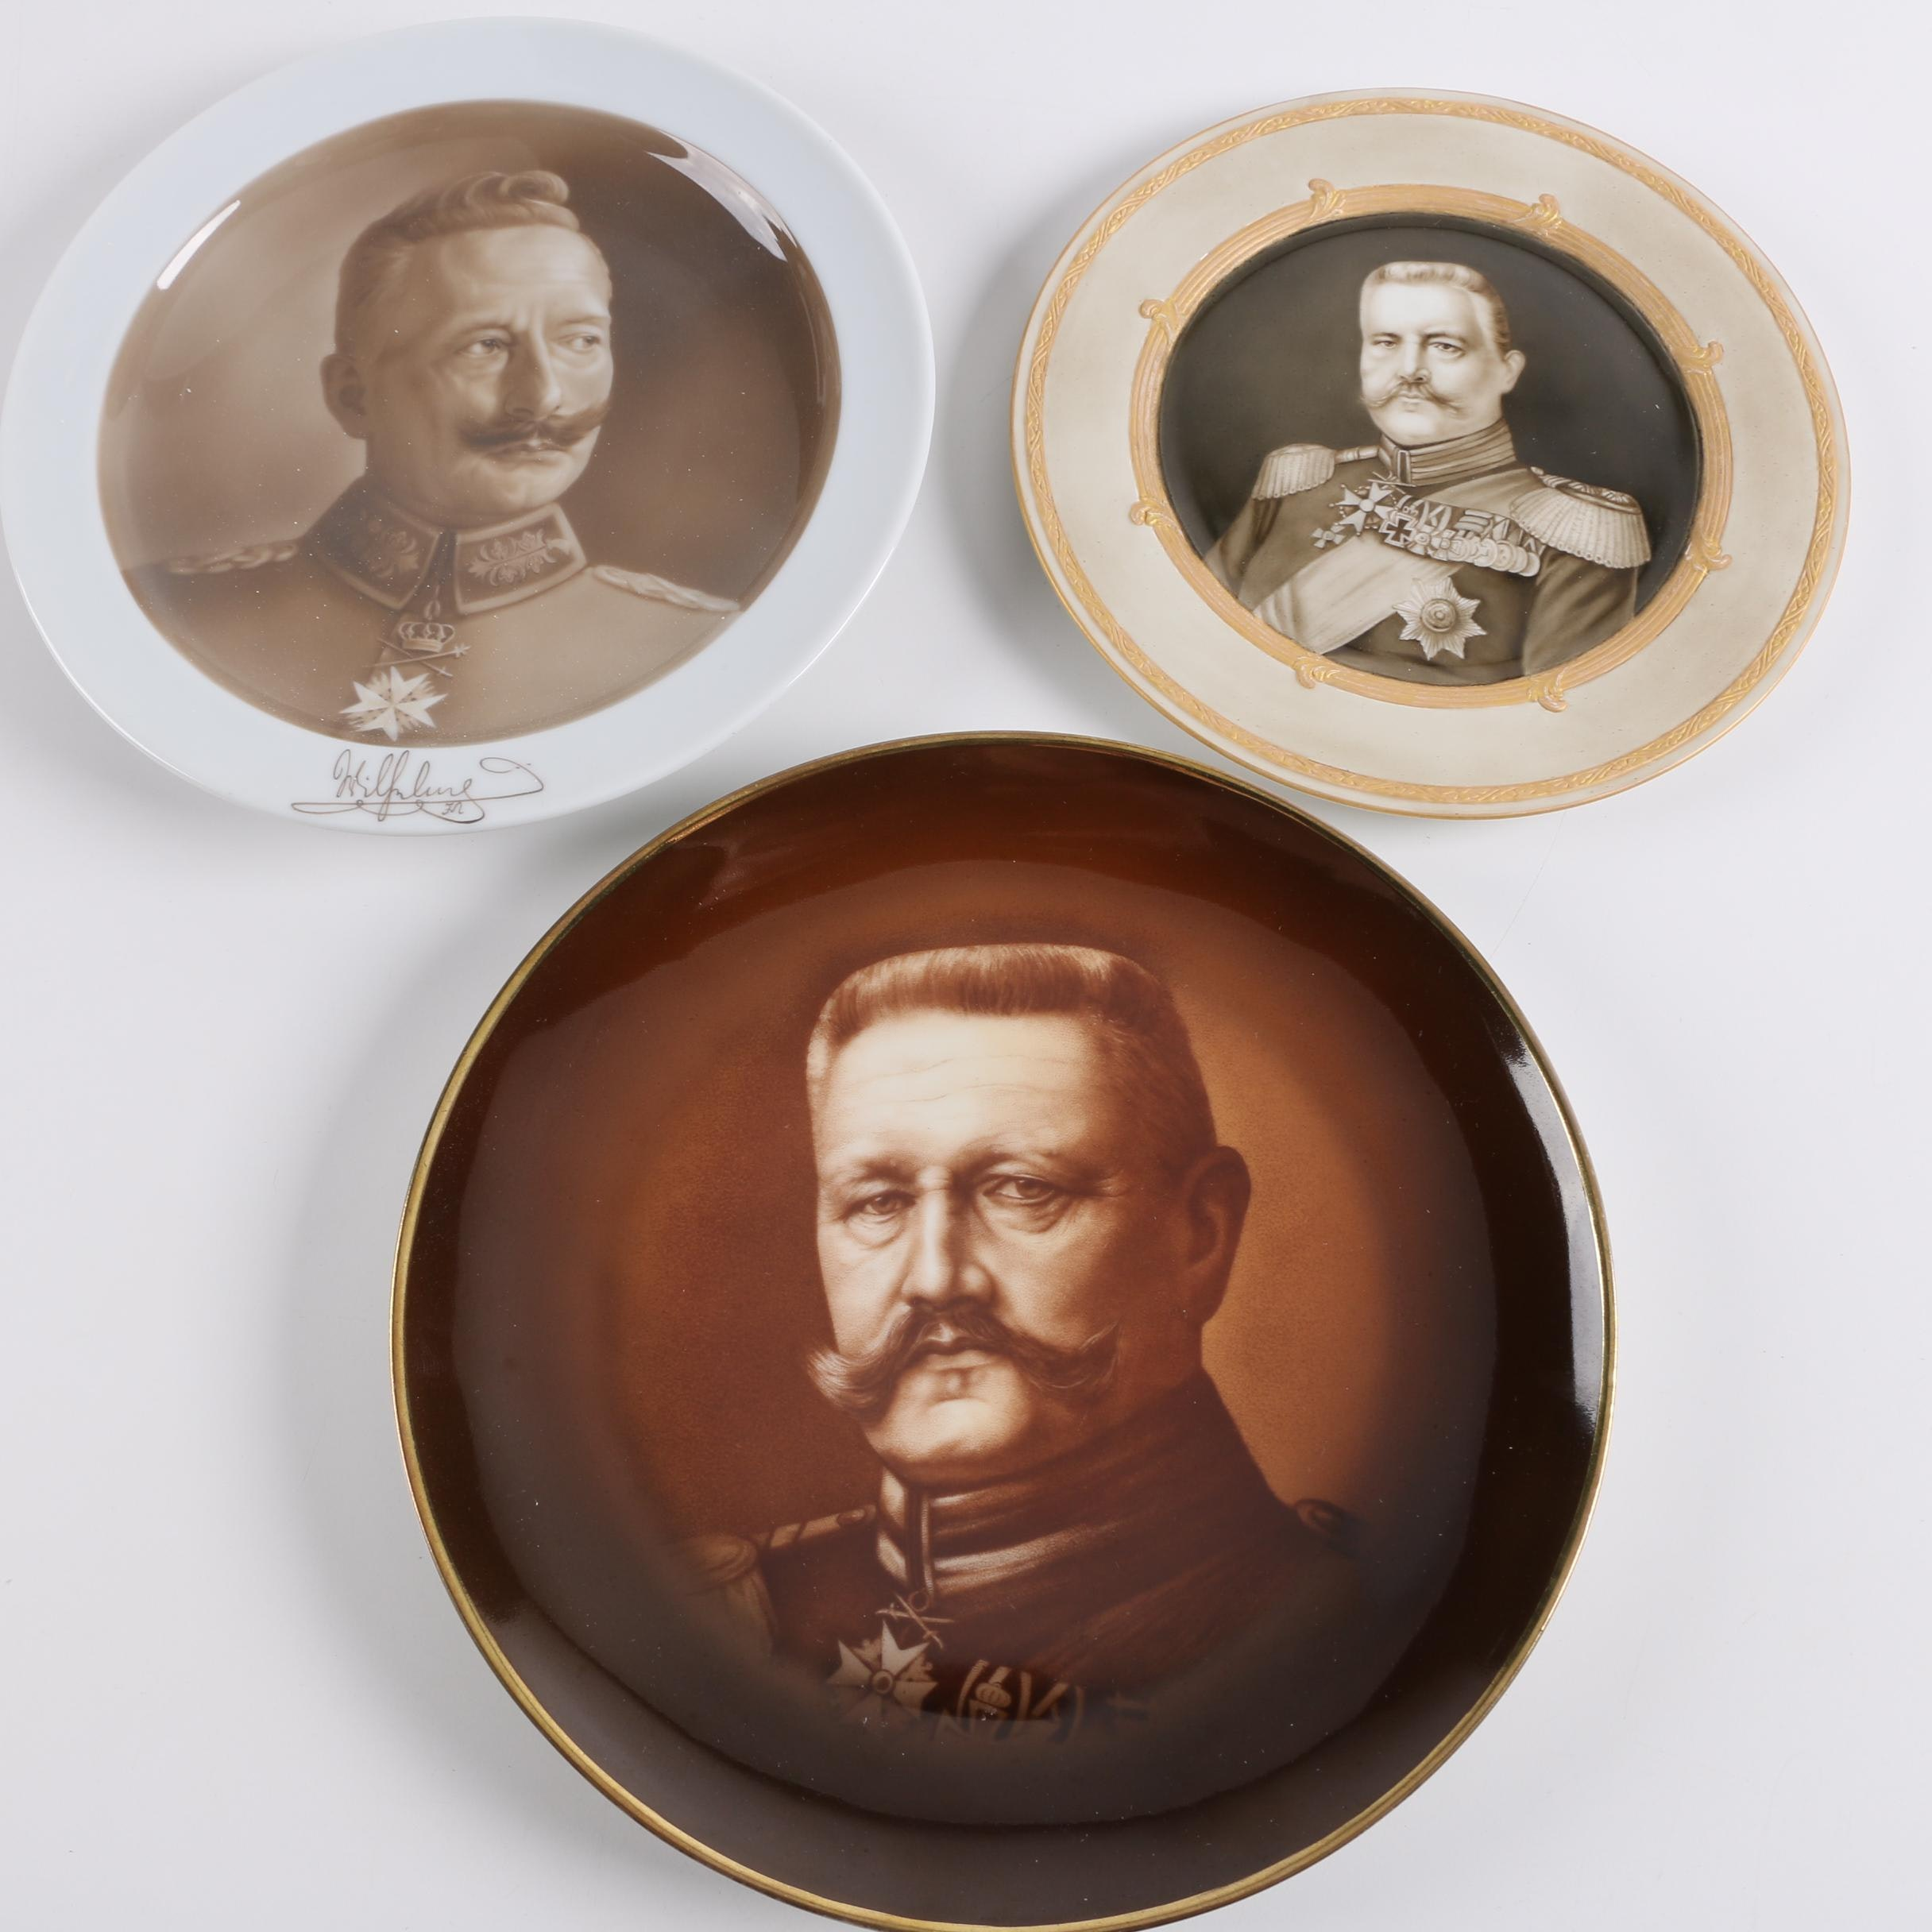 Antique Porcelain World War One Commemorative Plates Including KPM